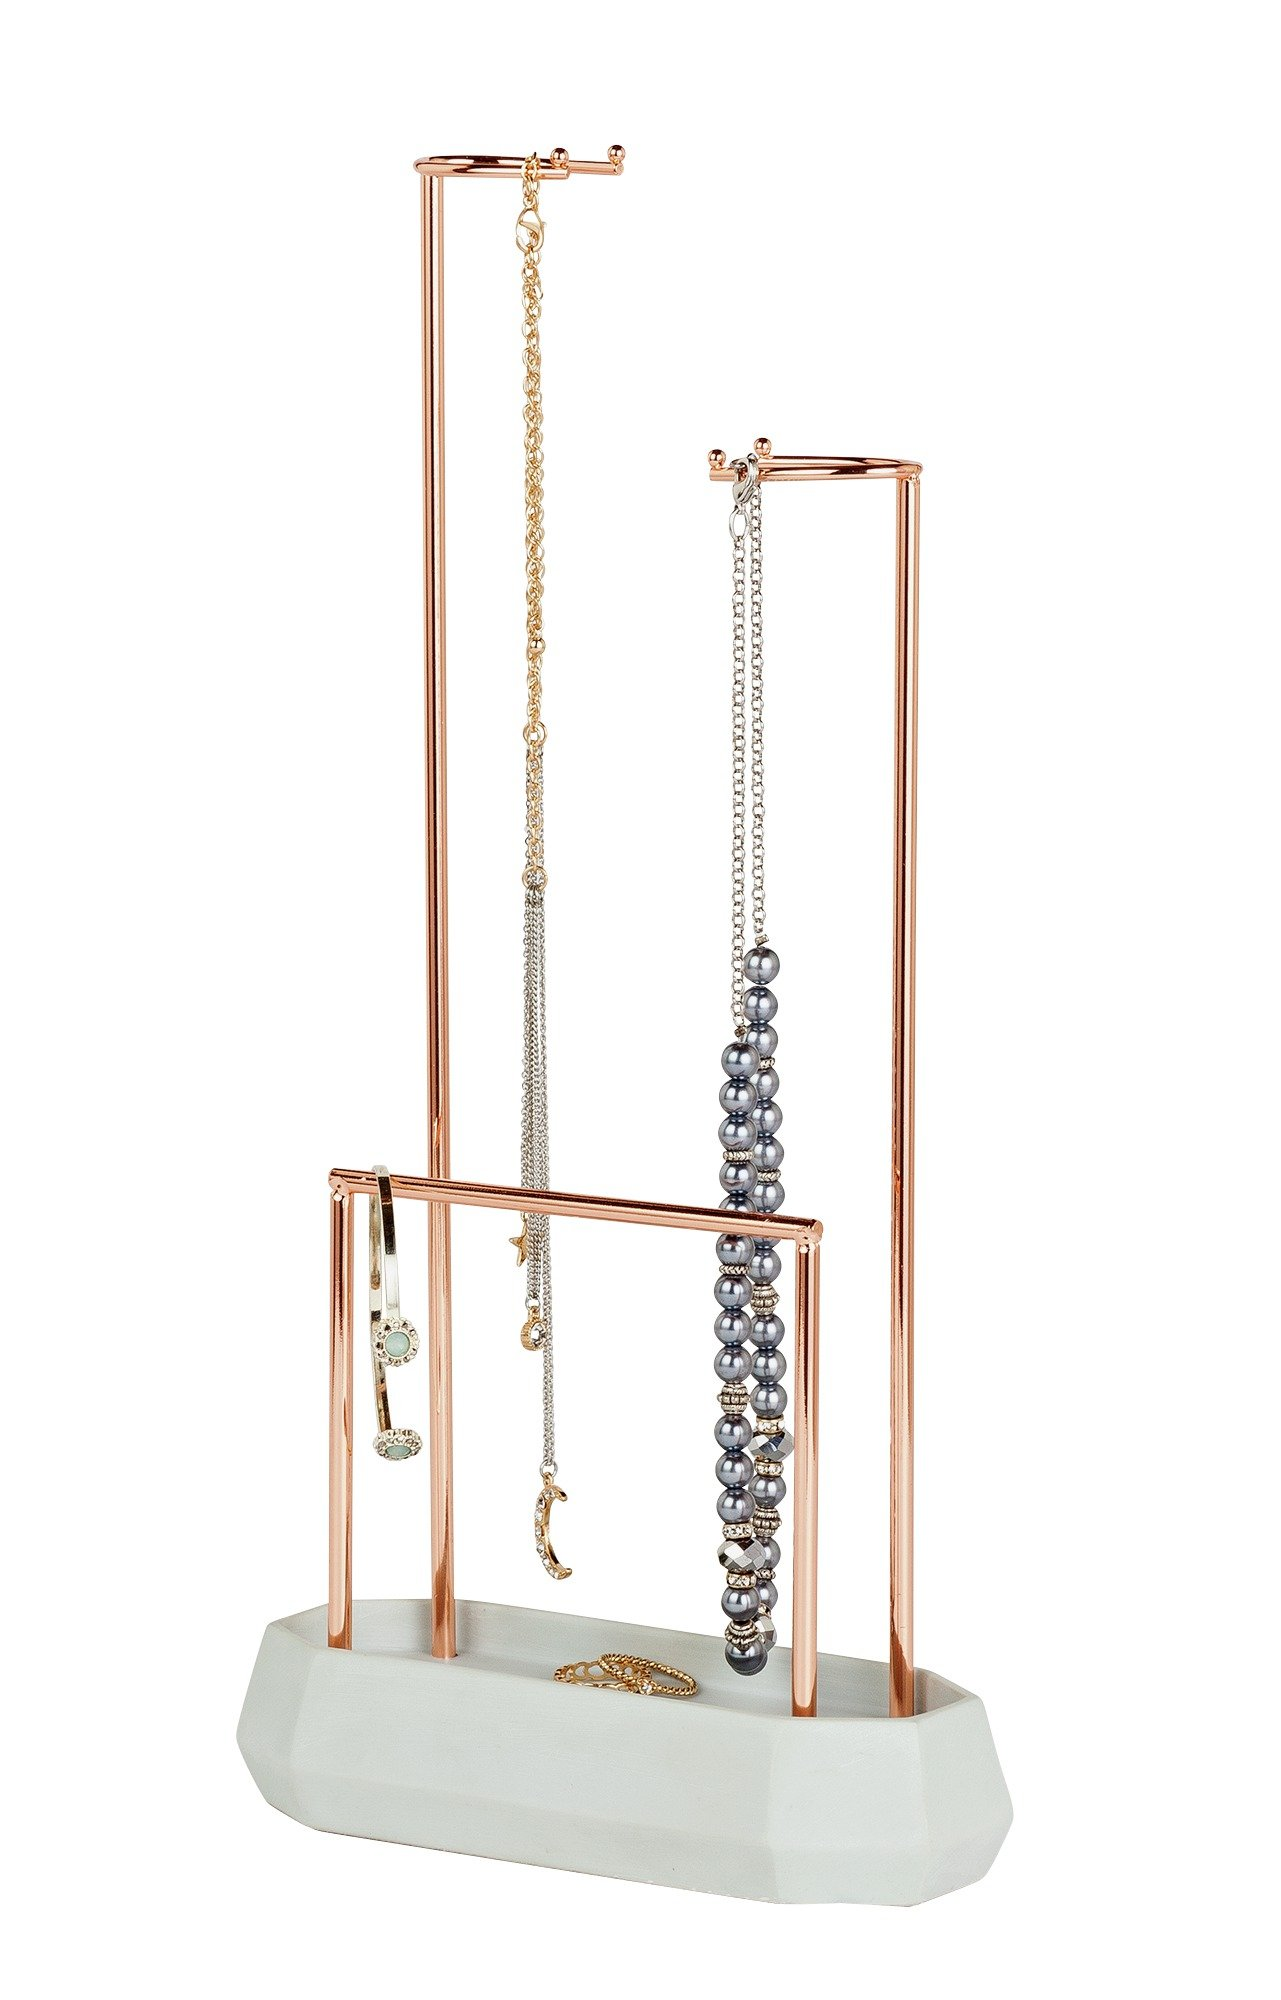 Rose Gold Effect Jewellery Hanger with Concrete Effect Base